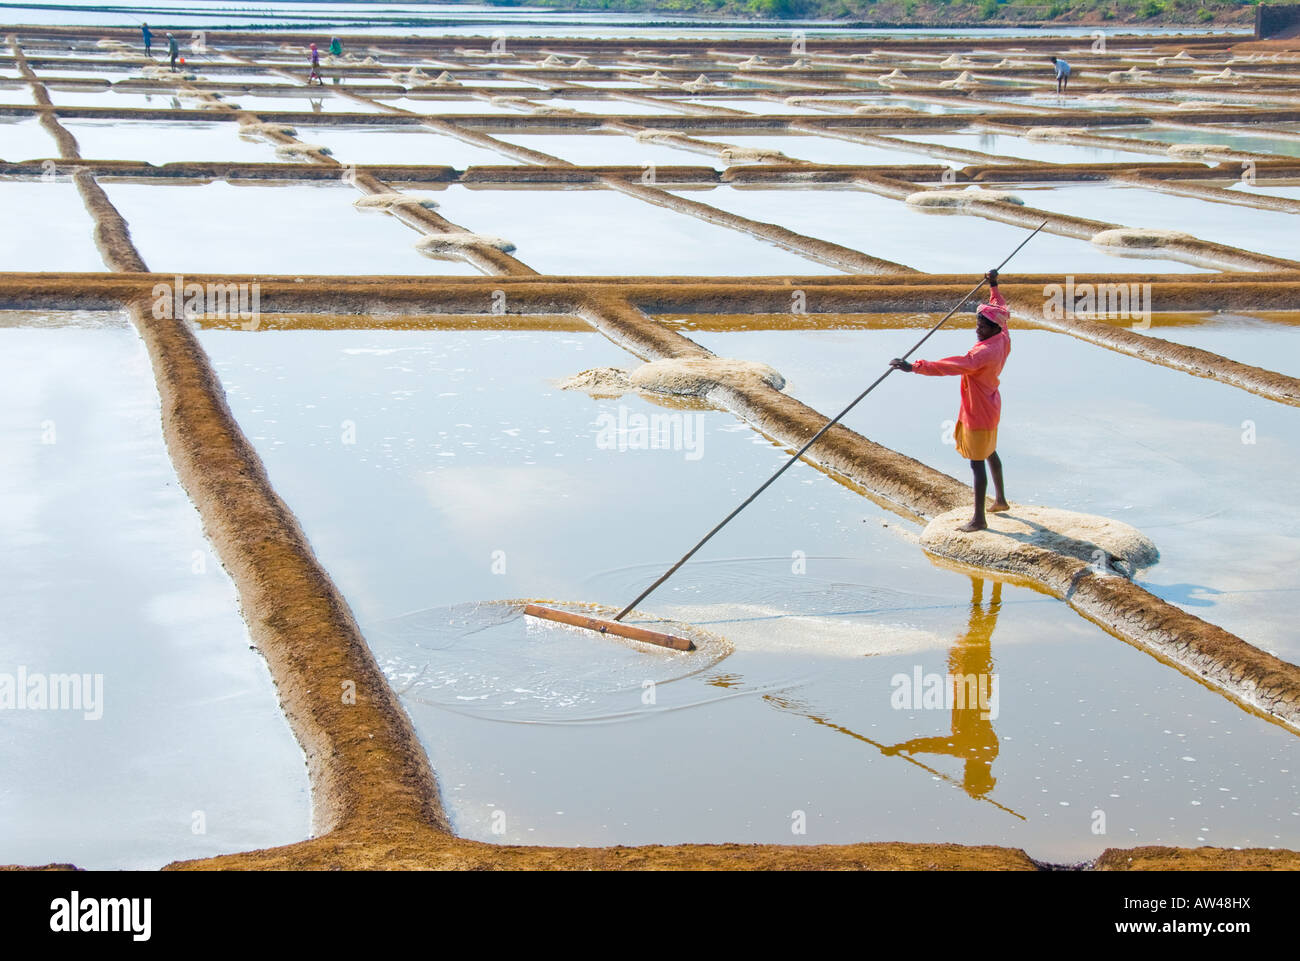 A man gathering sea salt from a salt pan in India - Stock Image